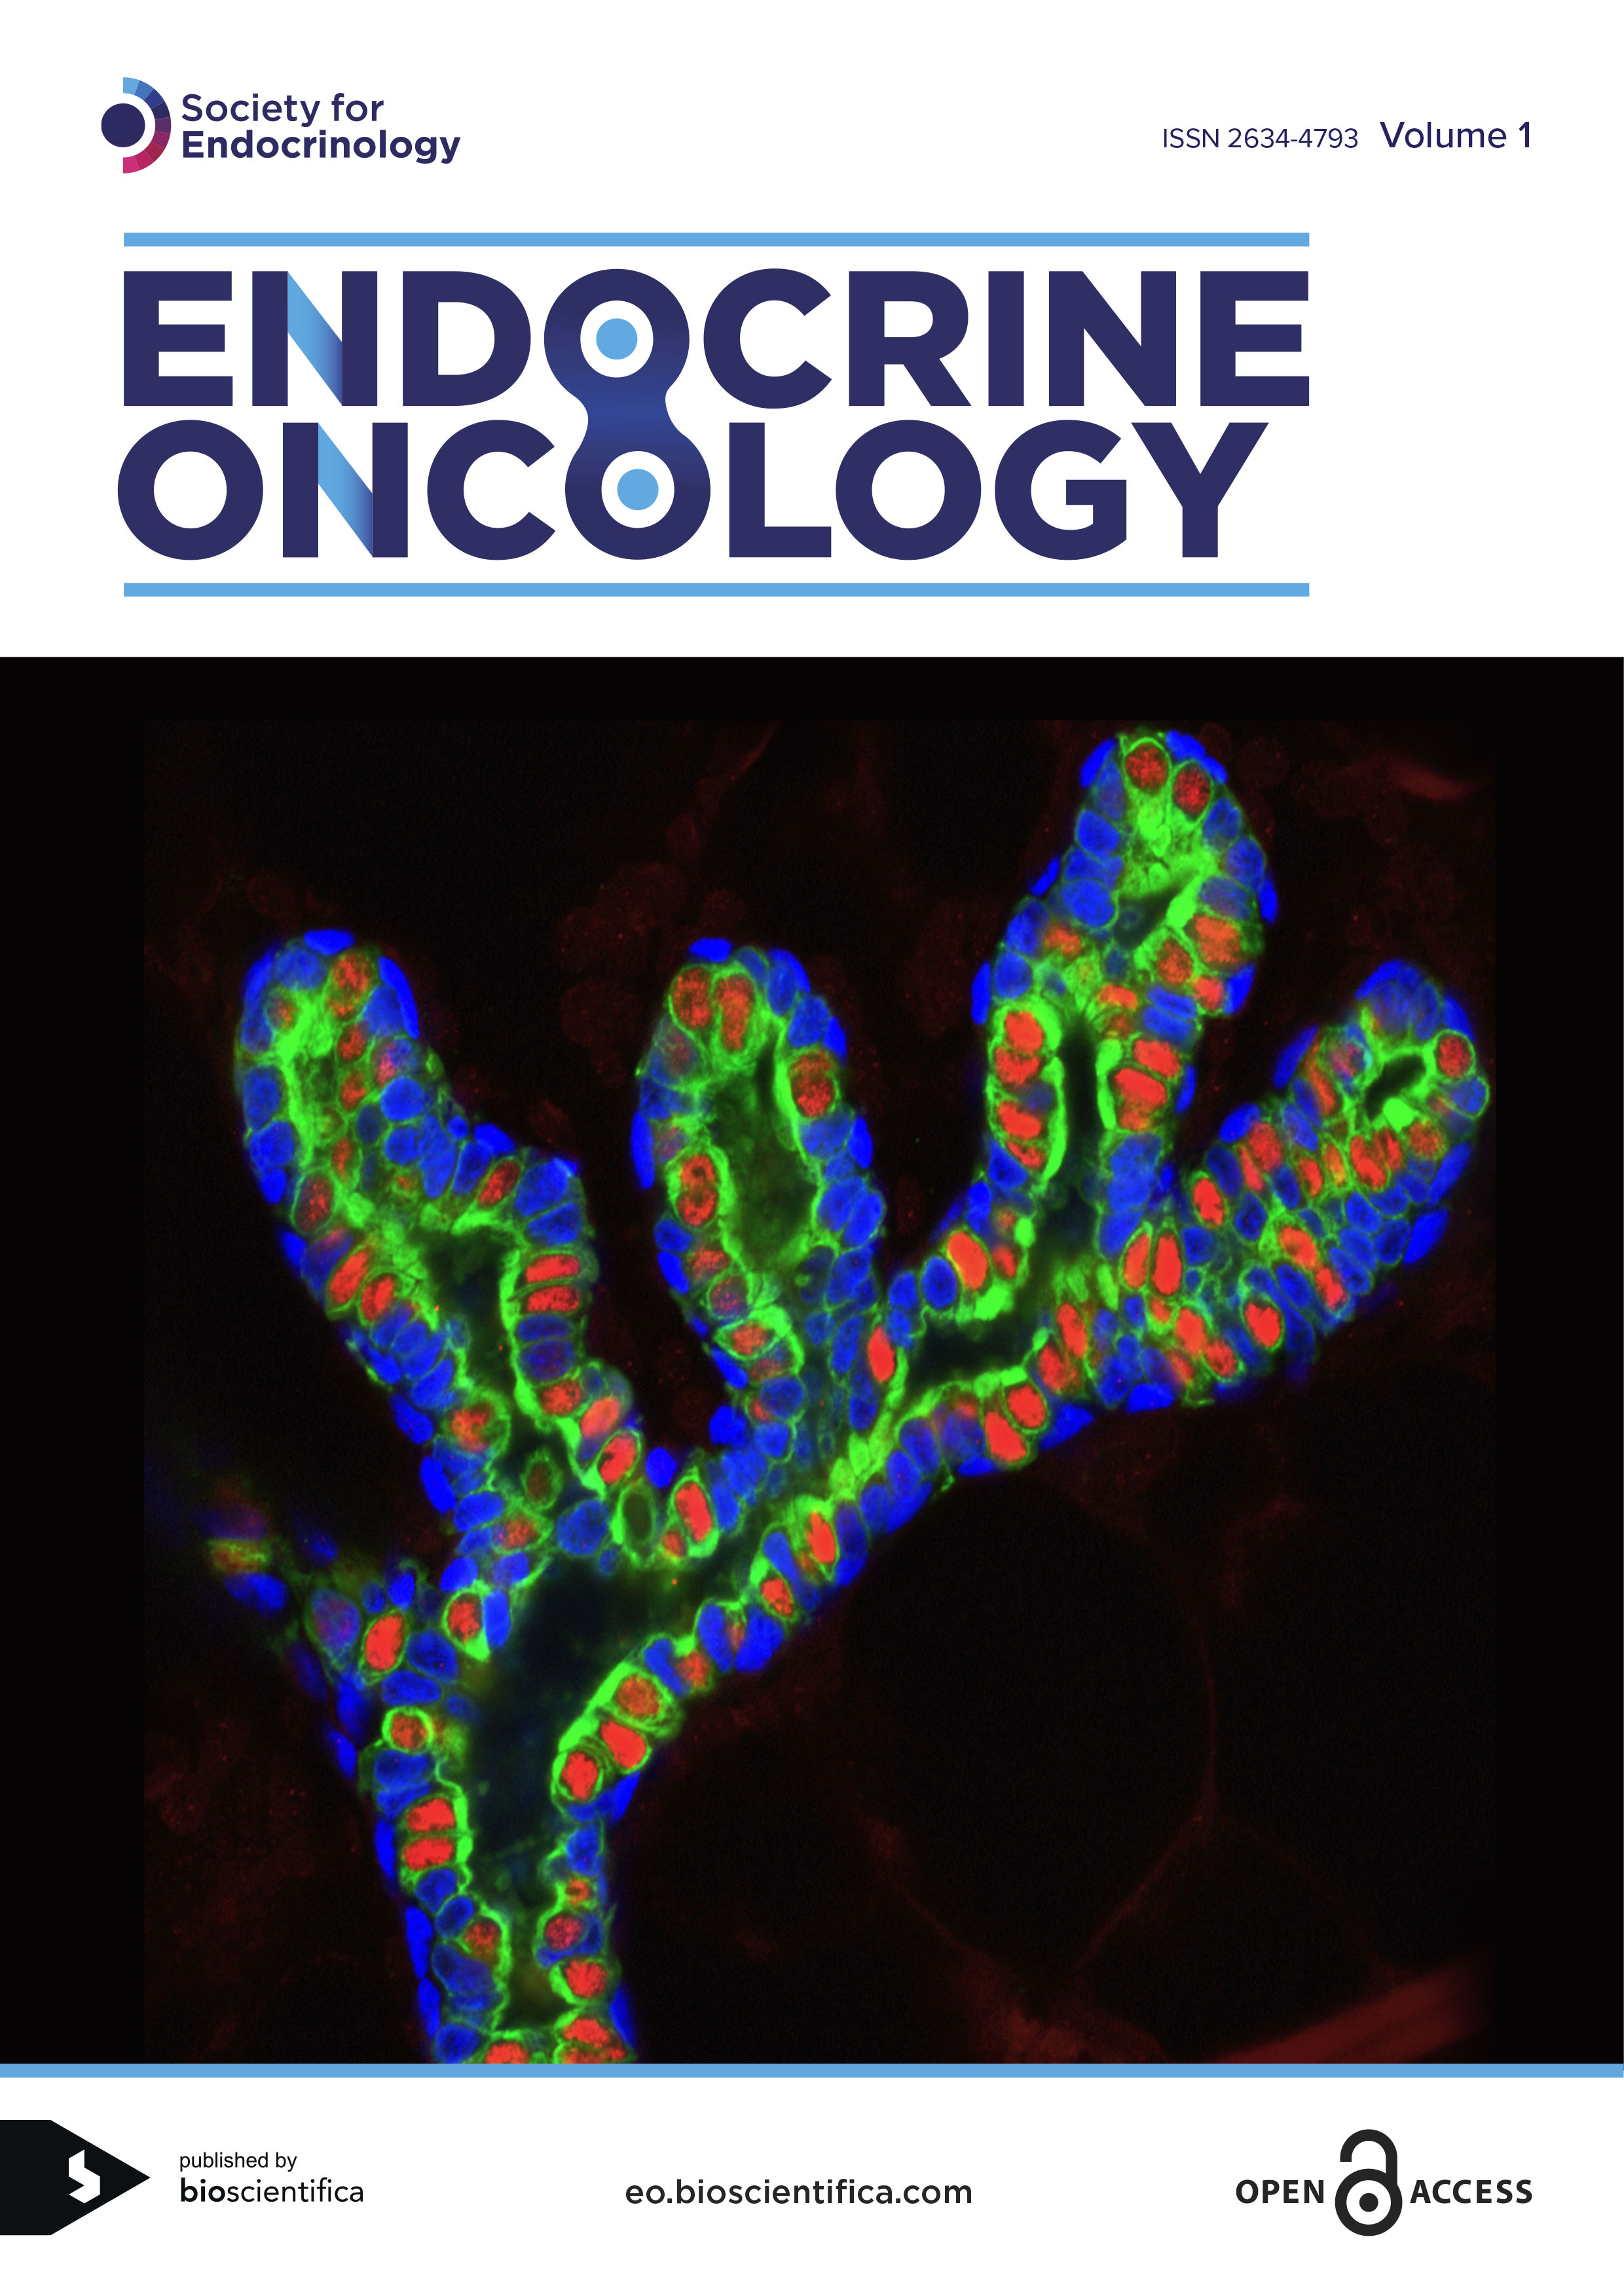 Endocrine Oncology Cover Vol 1 Hires MH